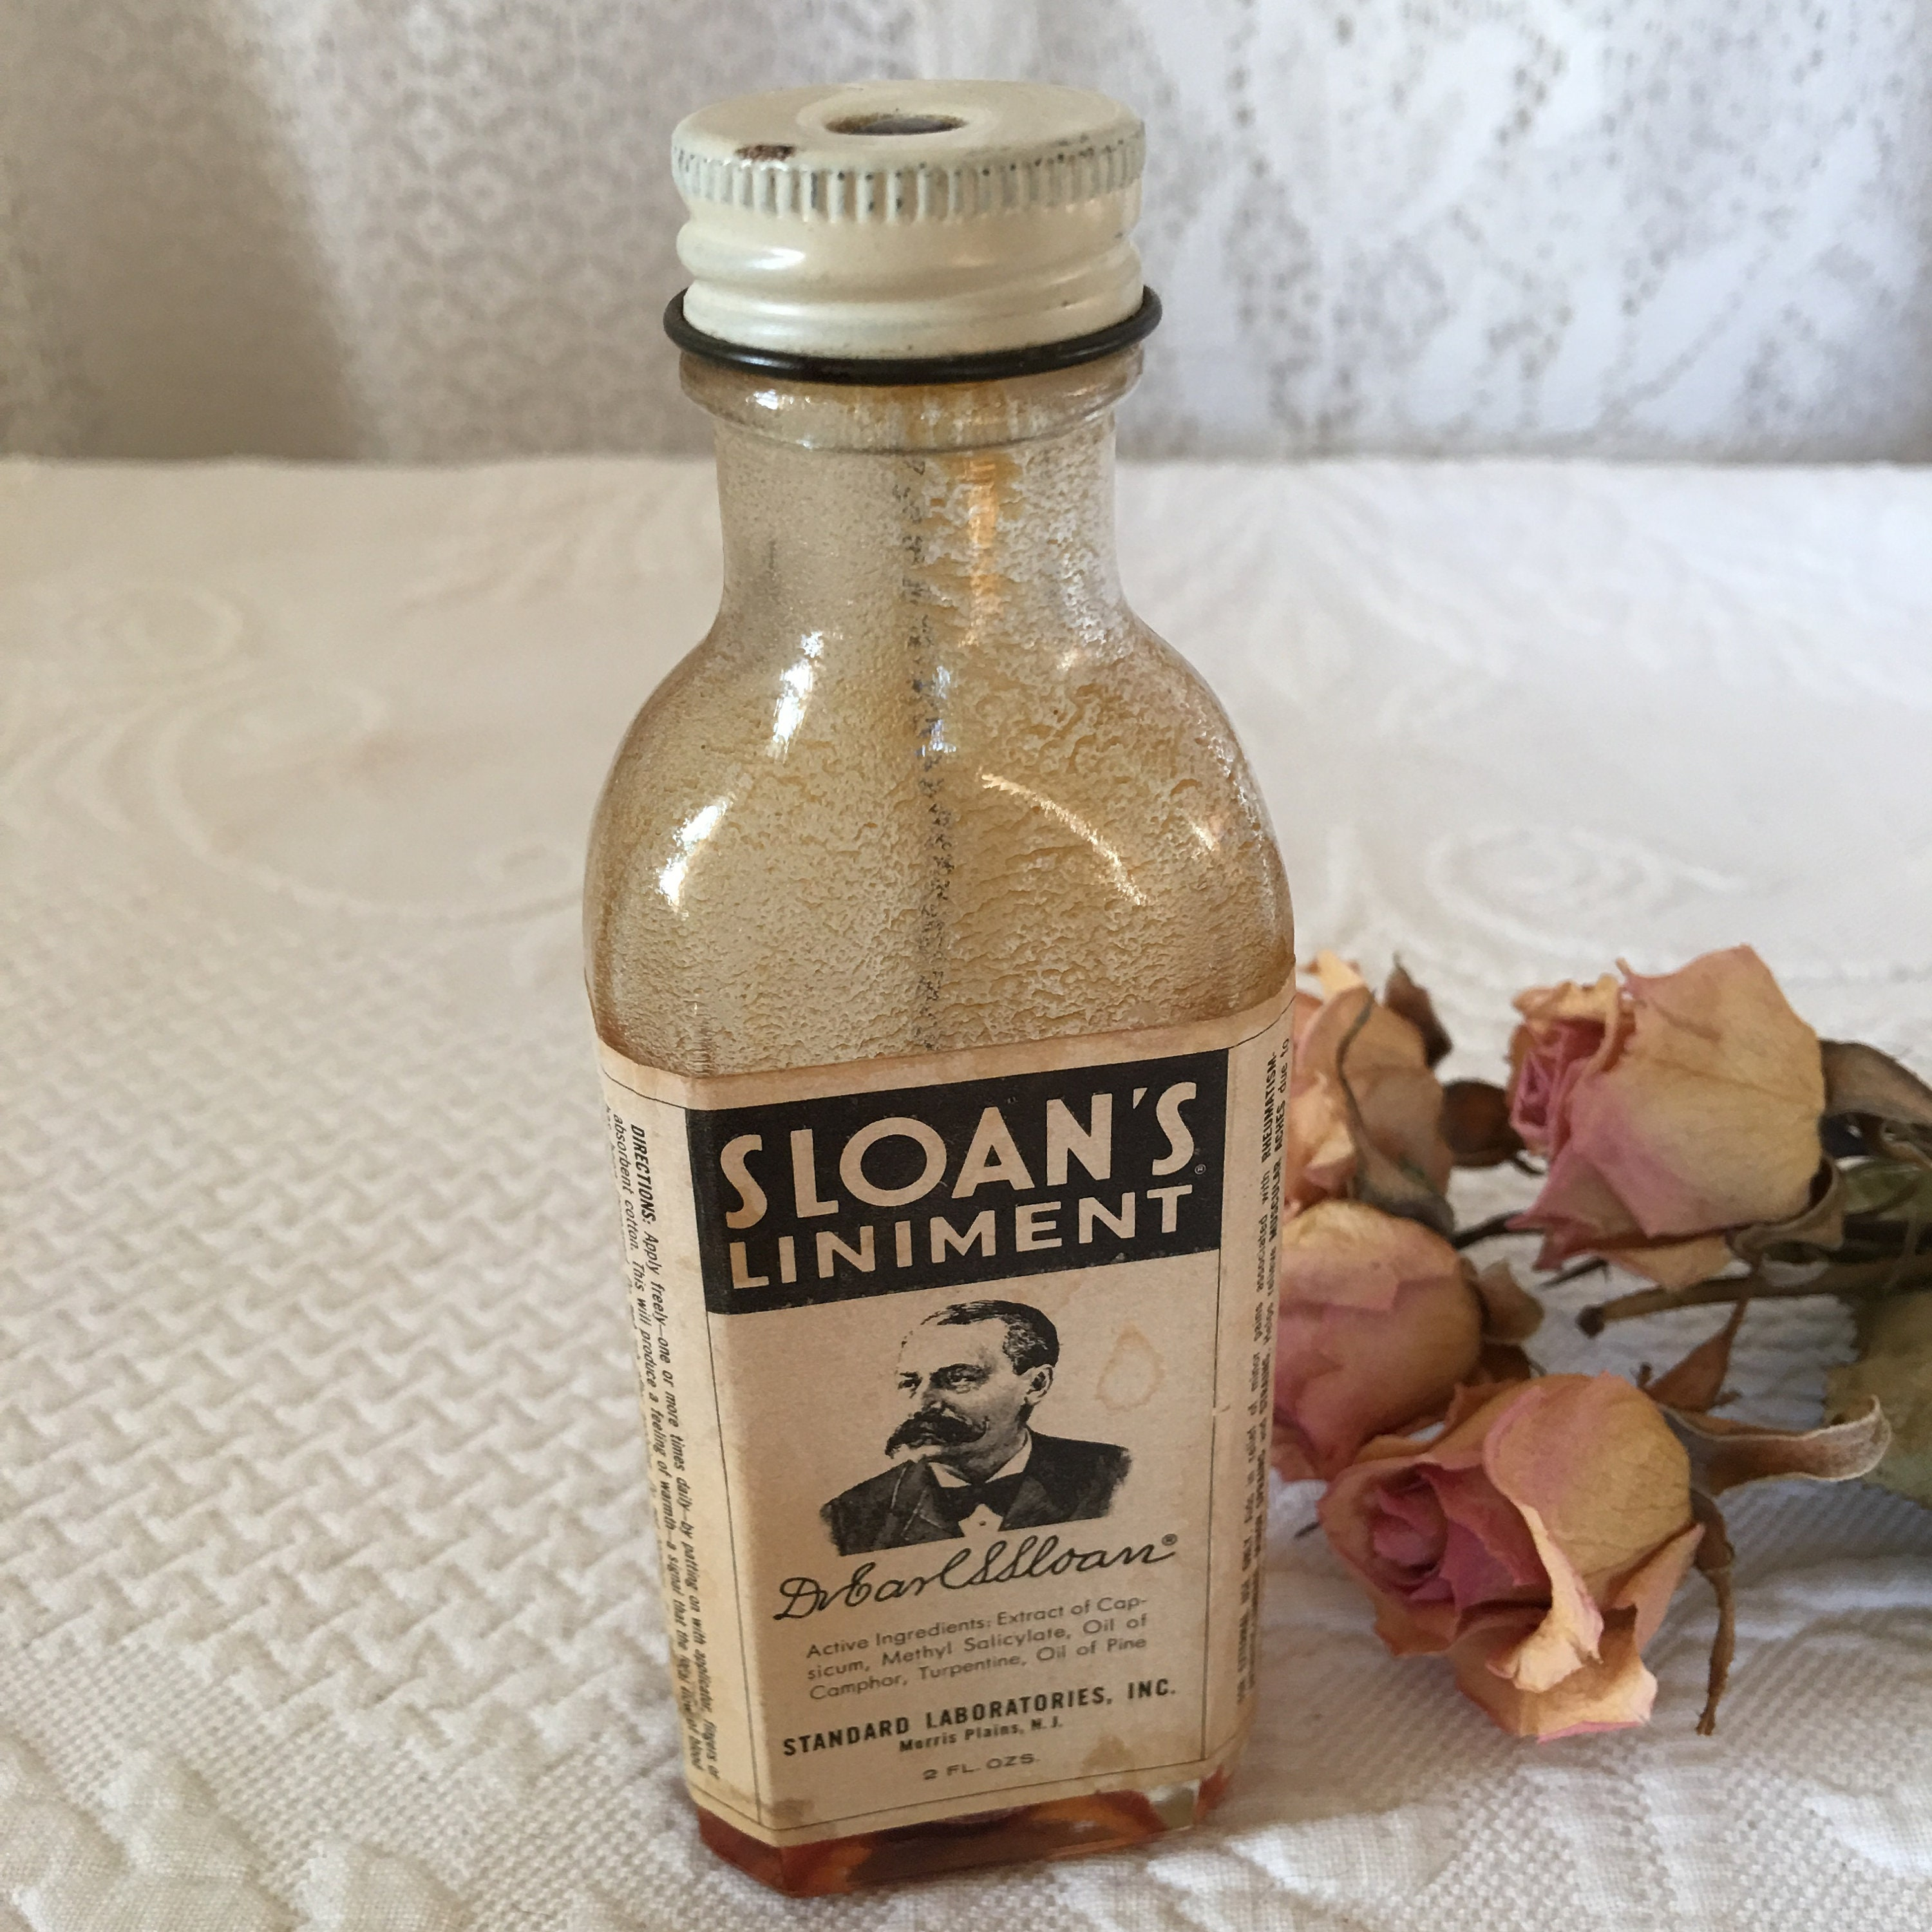 Vintage Sloan's Liniment Bottle With Original Label  Glass Medicinal Bottle  With Metal Screw On Top and Applicator  Some Liniment Inside